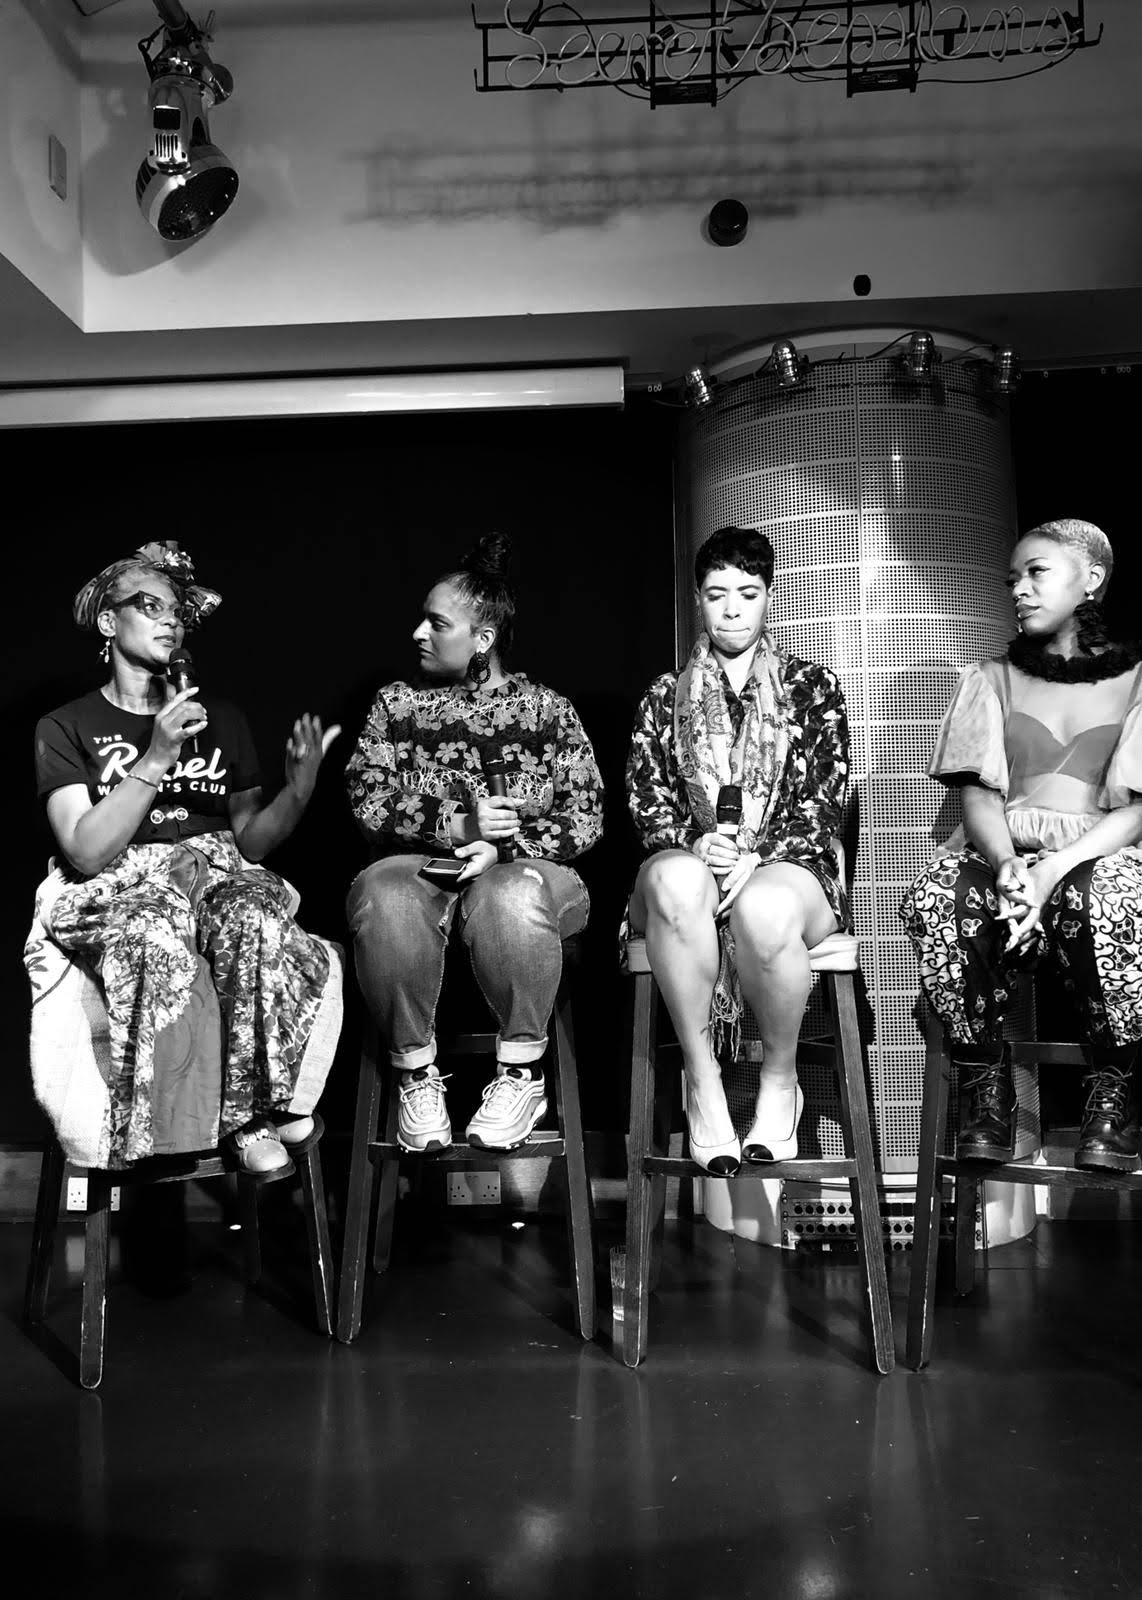 I was invited by The Fika Session to be a panelist with some inspirational women to celebrate Black History Month. Pictured here with writer and facilitator Arfa Butt, DJ and fitness guru Melody Kane and Singer songwriter Kimberley Nichole. Photo by Eva Palazzetti. October 2018